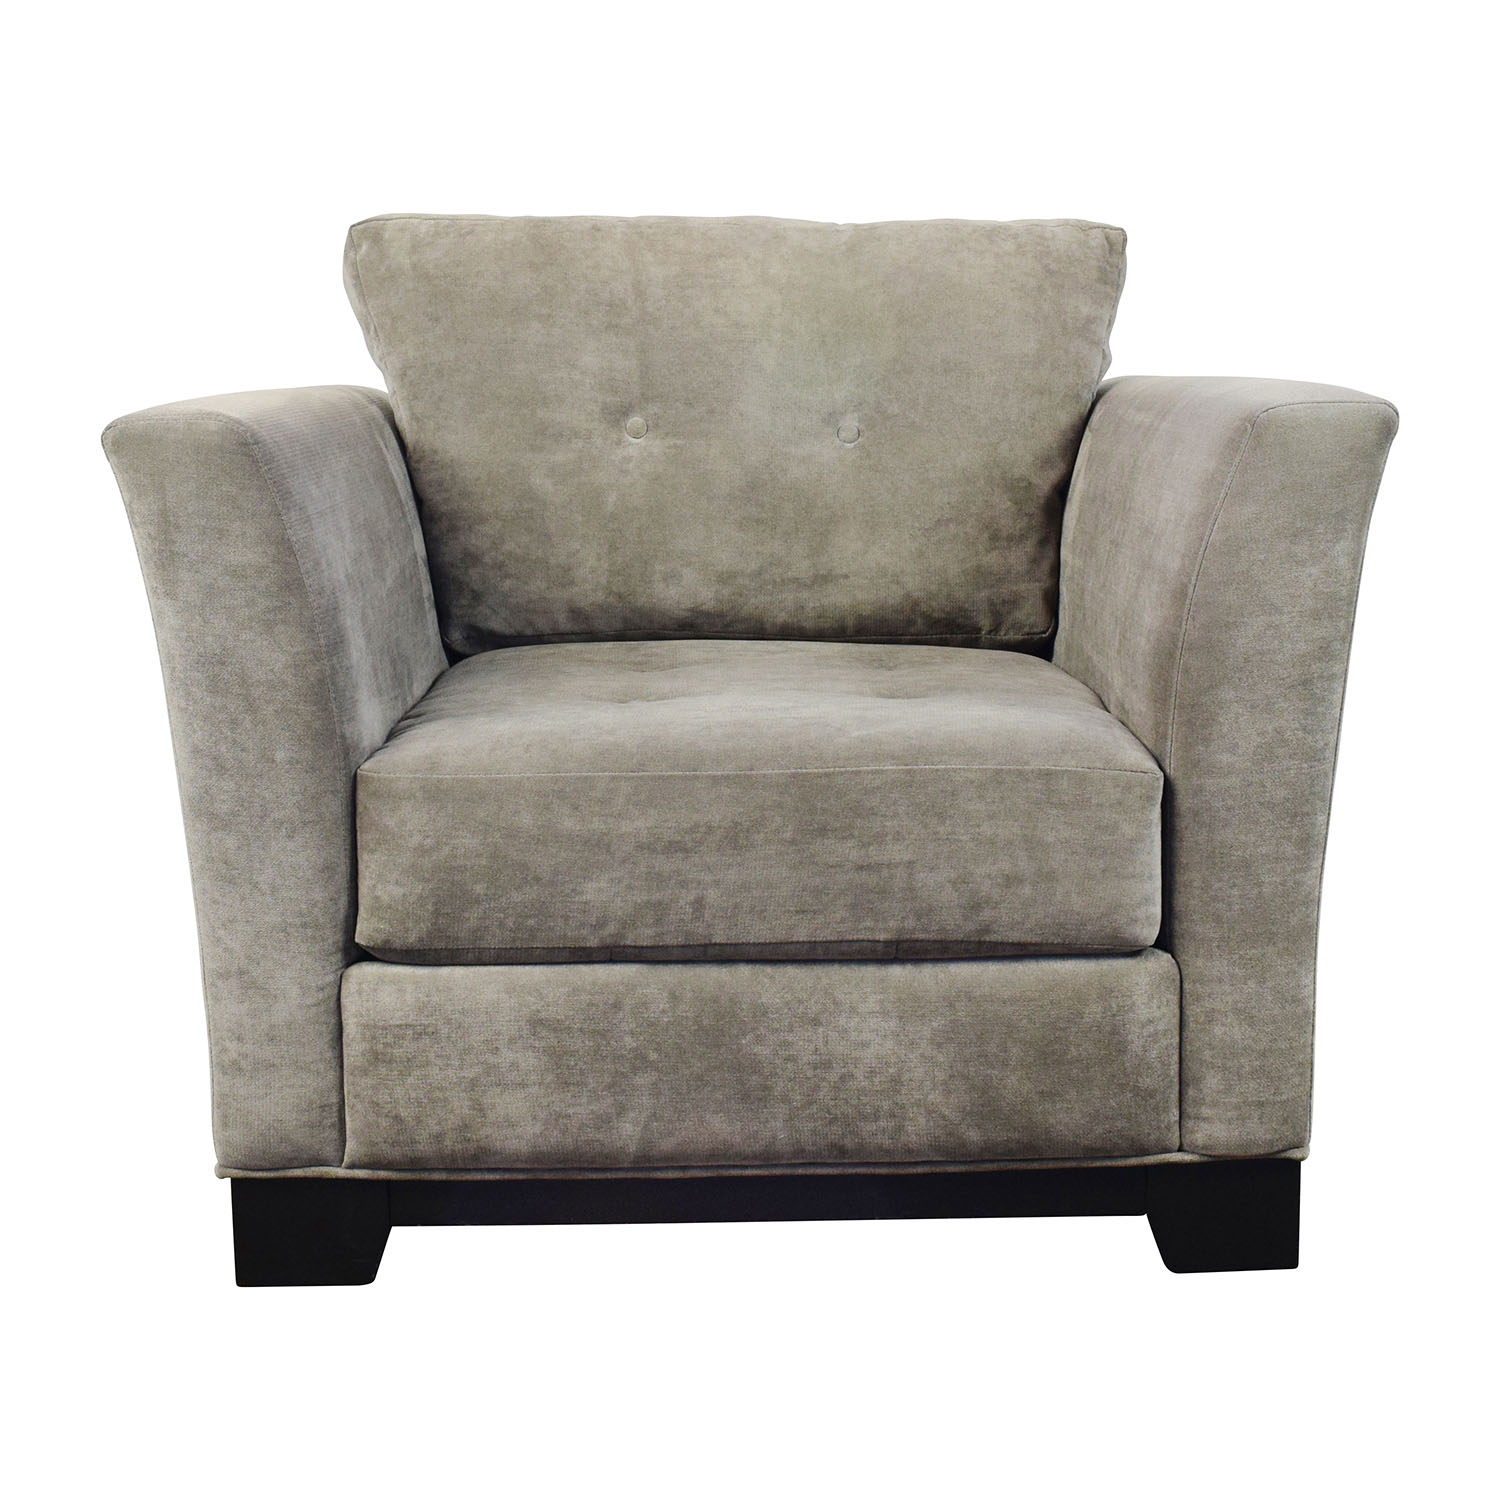 Macys Macys Grey Tufted Arm Chair used